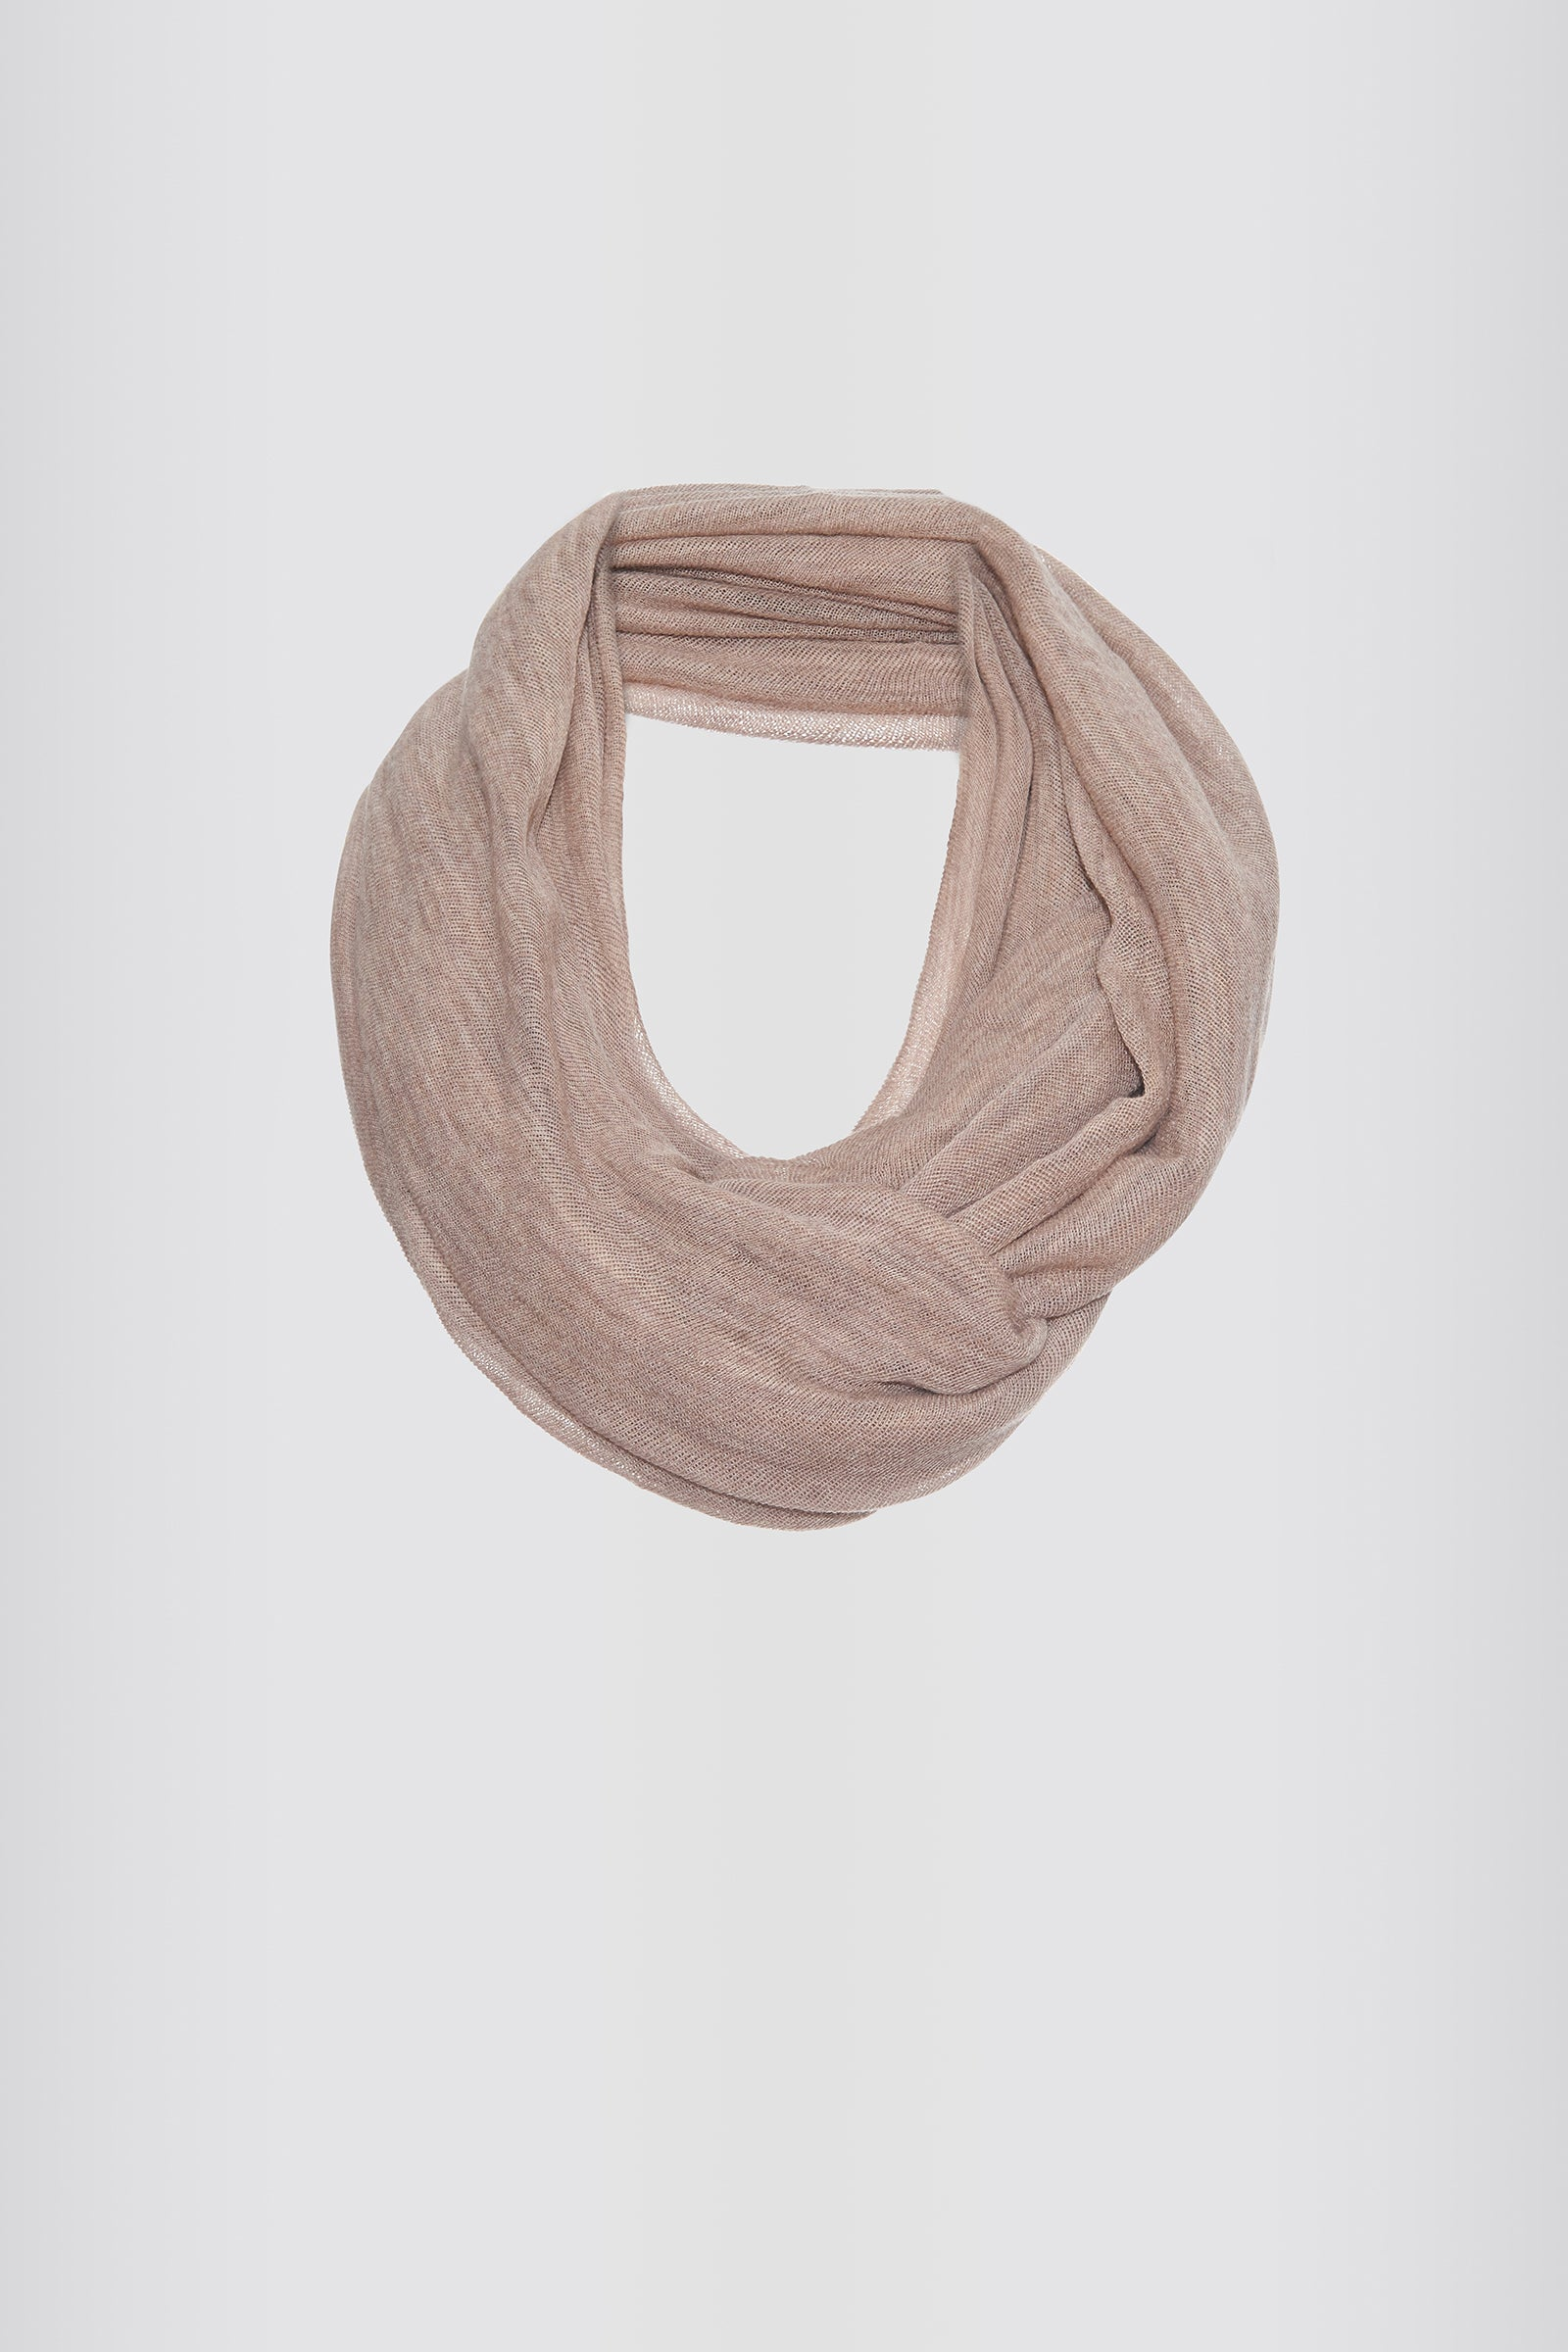 Kal Rieman Infinity Circle Scarf in Dark Beige on Model Front Full View Untied